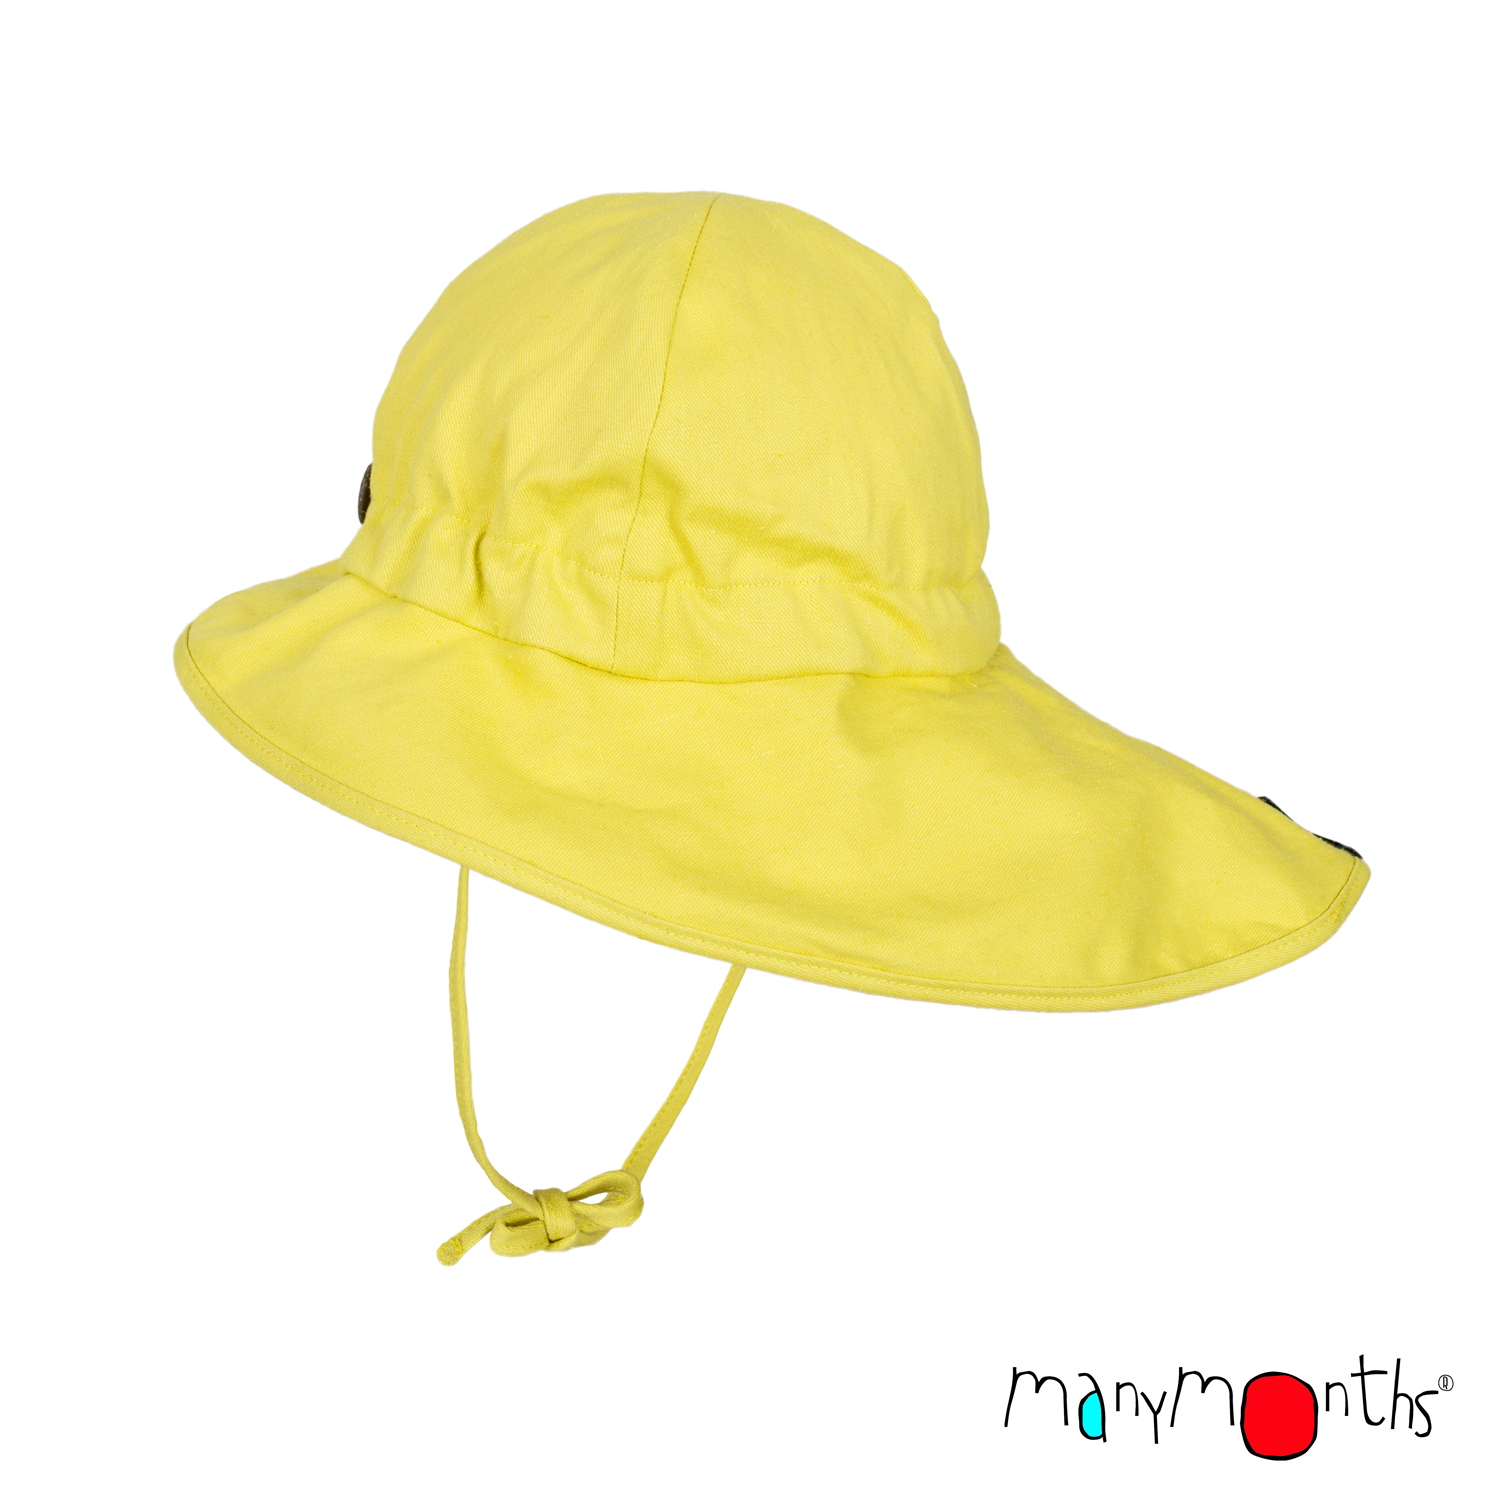 ManyMonths ECO Hempies Adjustable Summer Hat Original